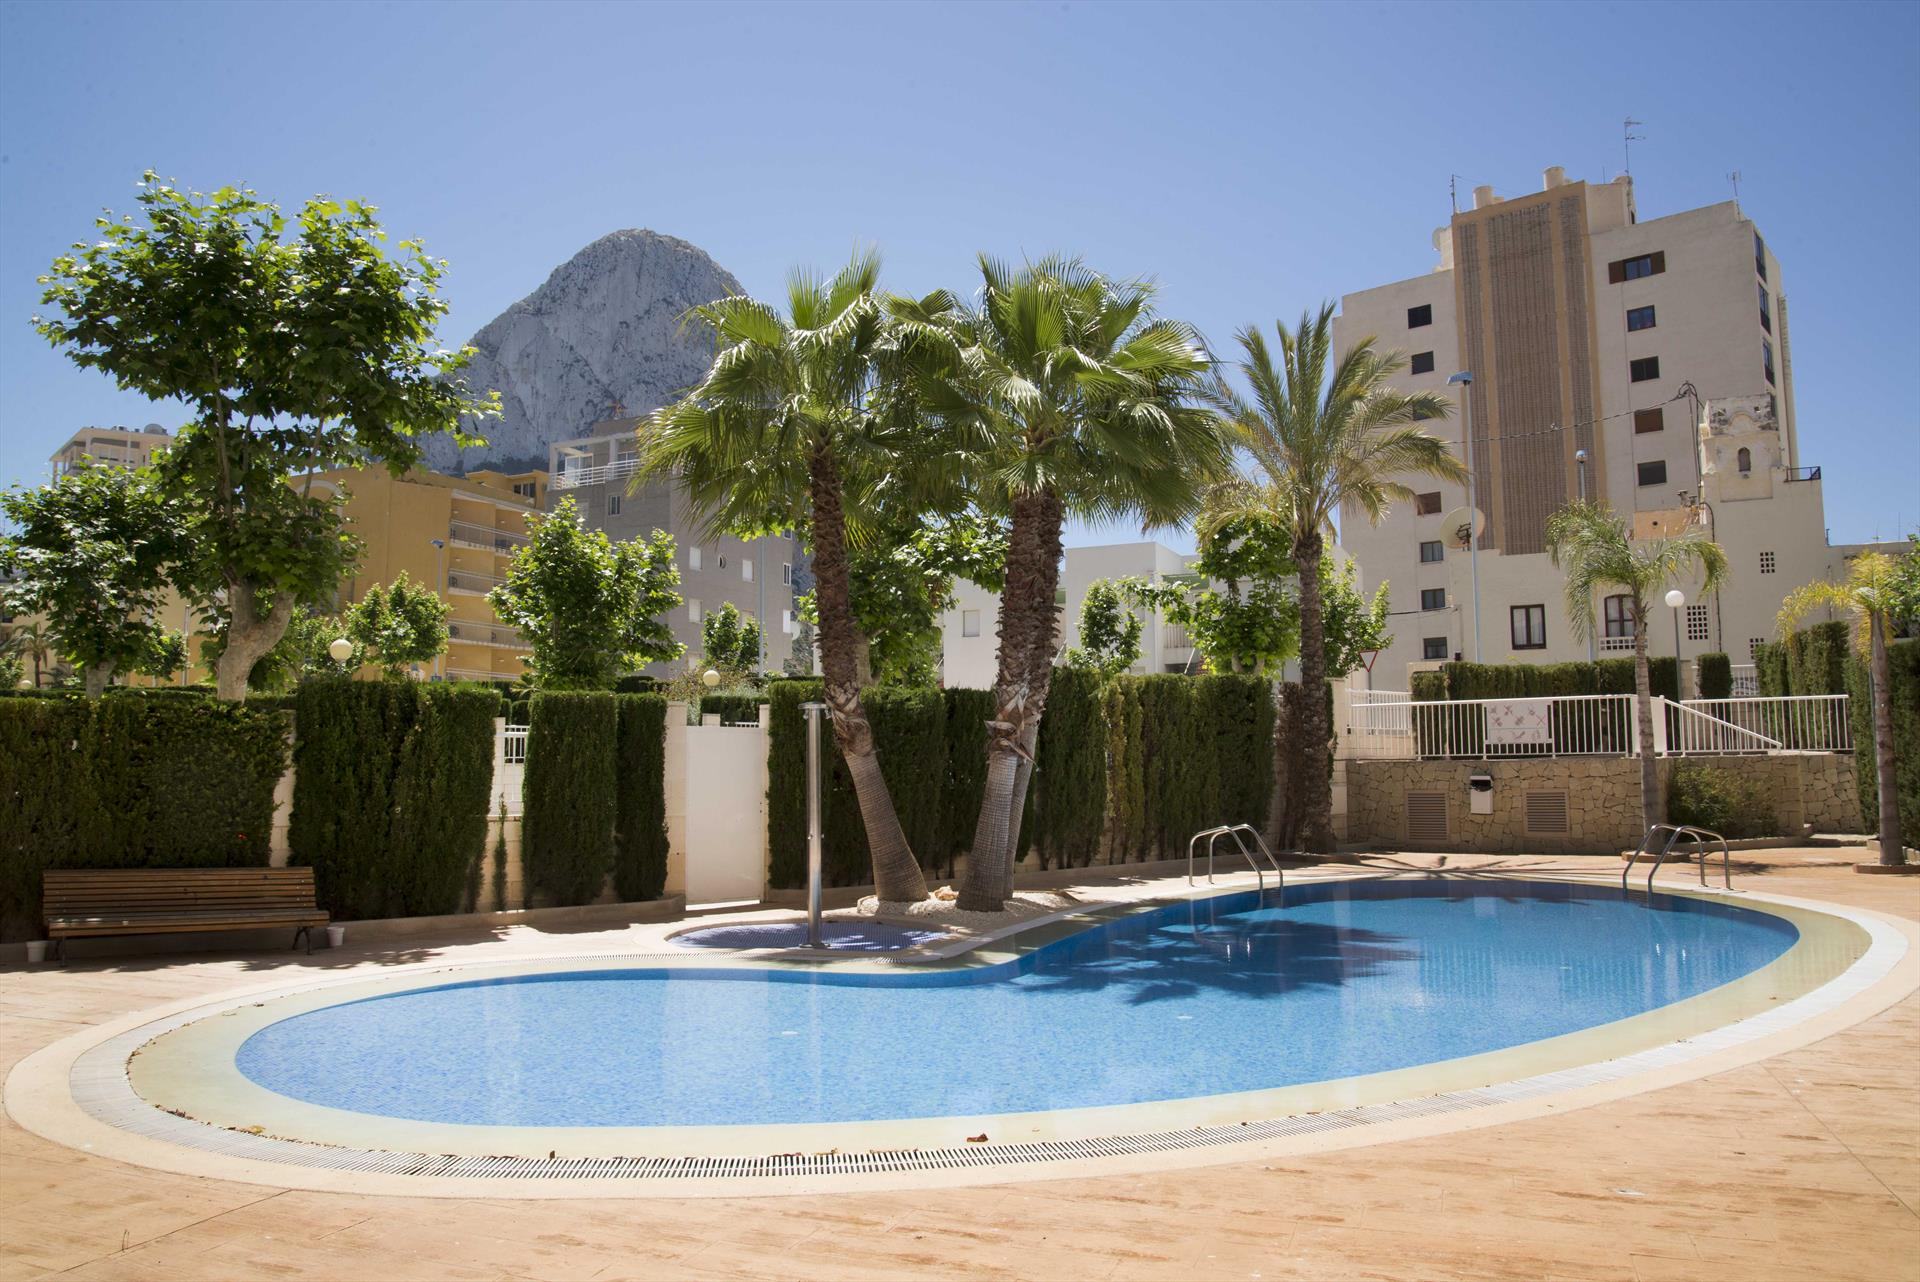 Estudio Apolo XIX 21R,Comfortable apartment  with communal pool in Calpe, on the Costa Blanca, Spain for 2 persons.....